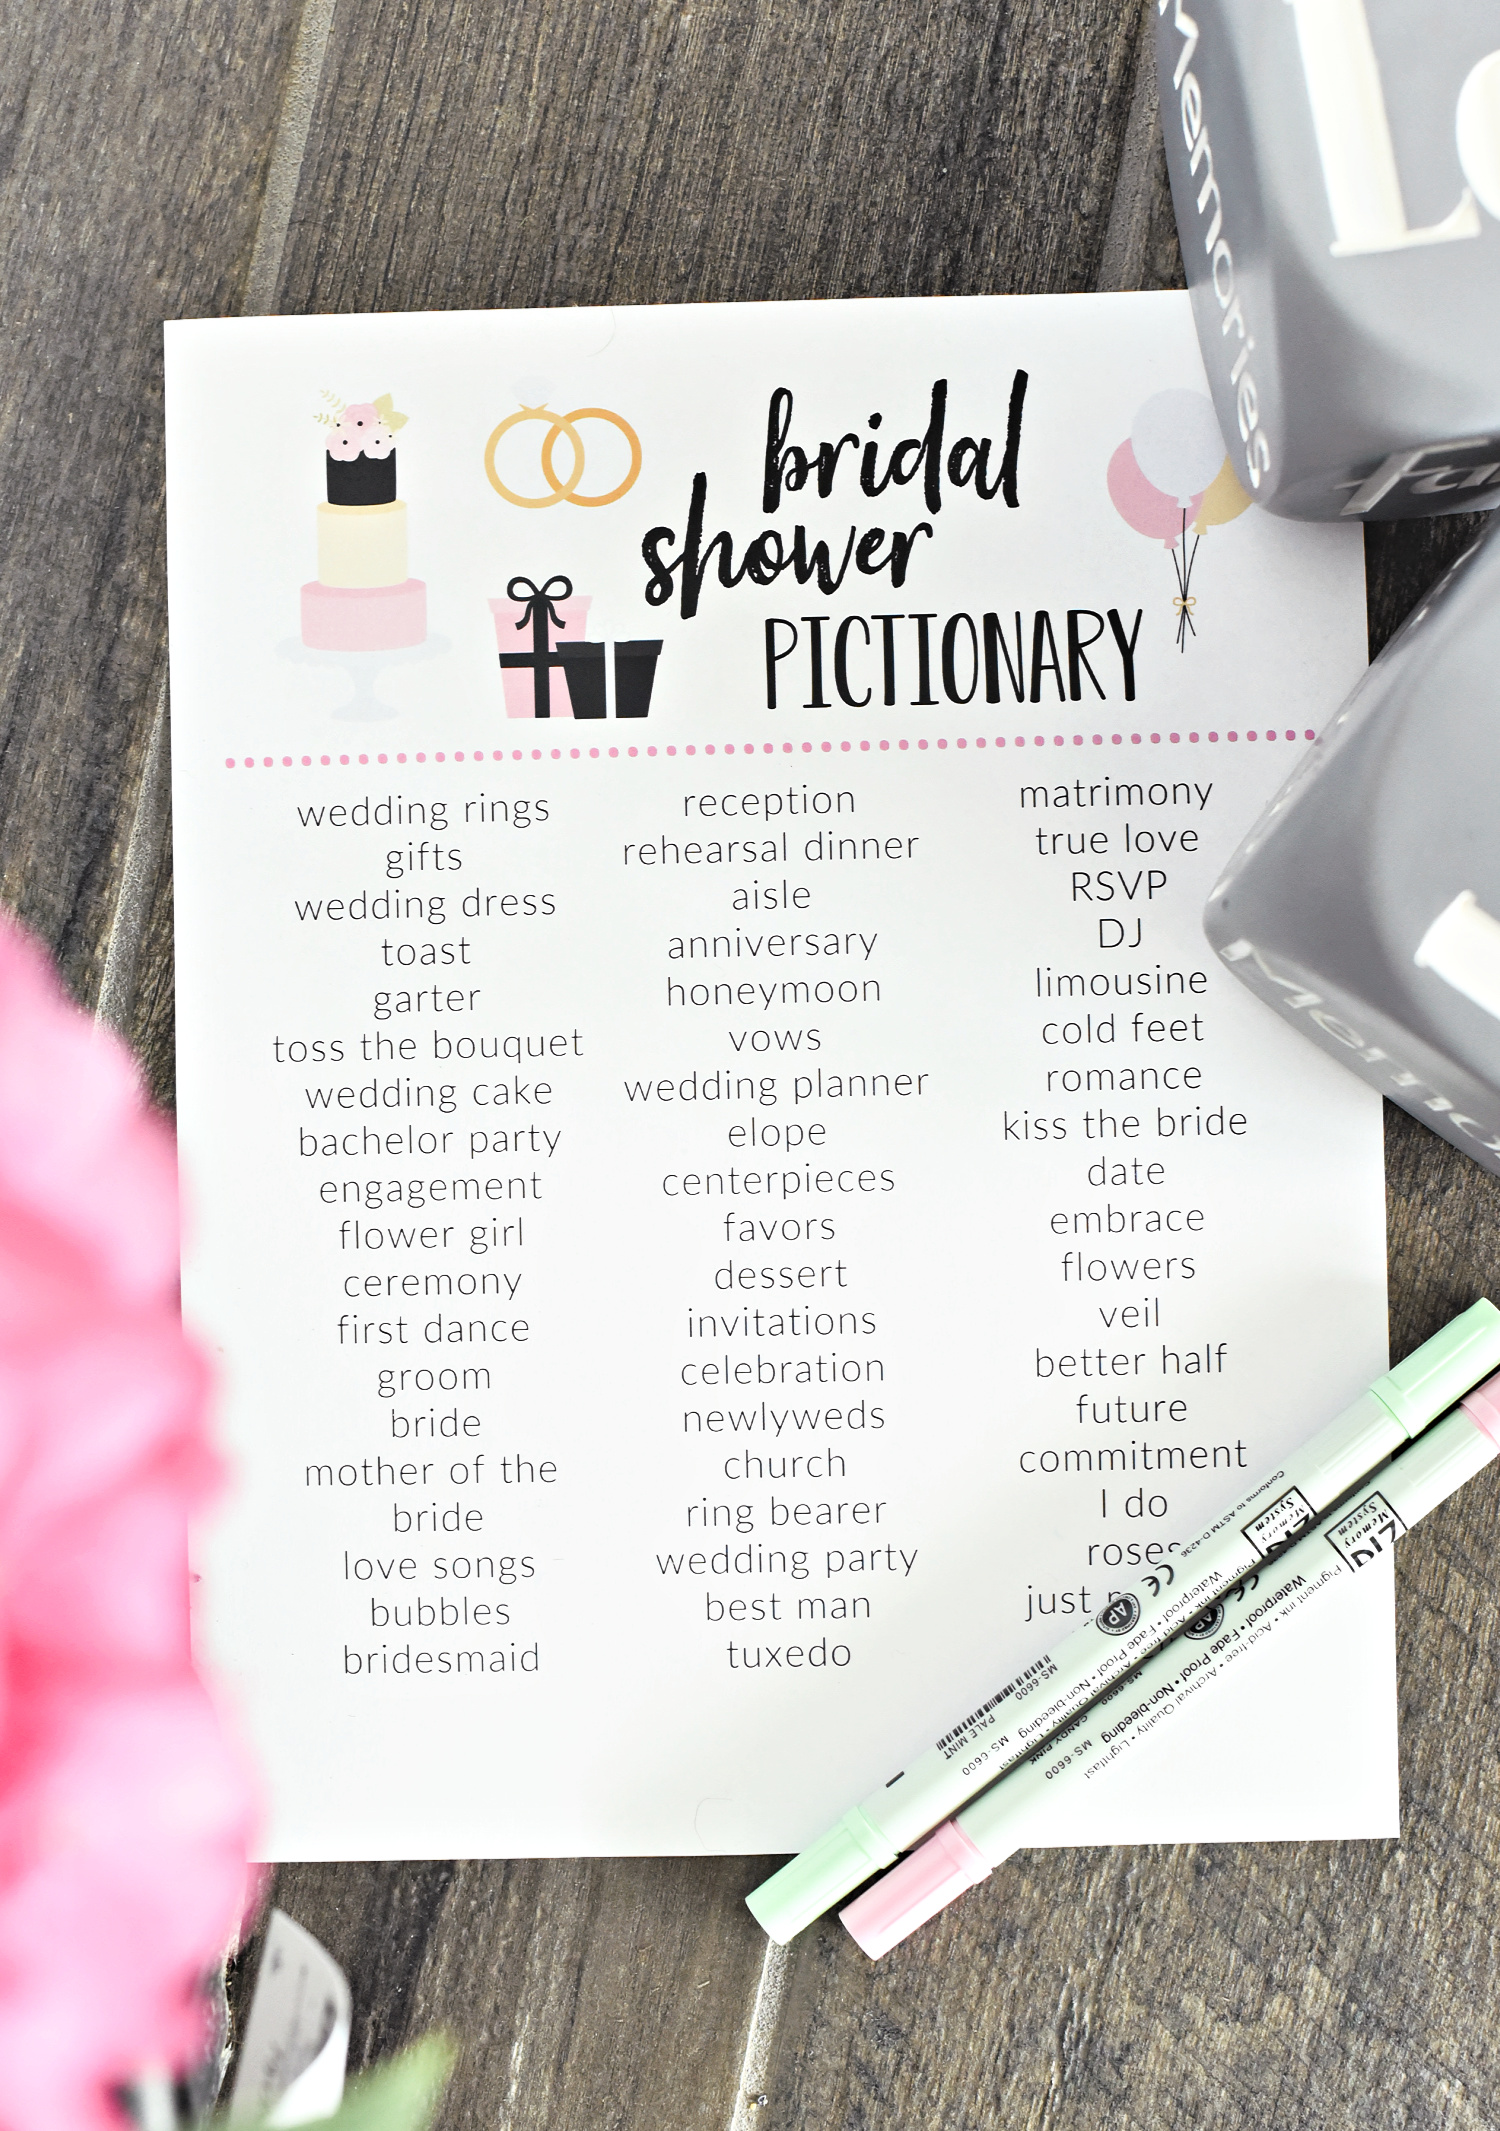 Bridal Shower Pictionary Game-all you need to do is print and play this fun bridal shower game. #bridalshower #games #bridalshowergames #bridalshowerideas